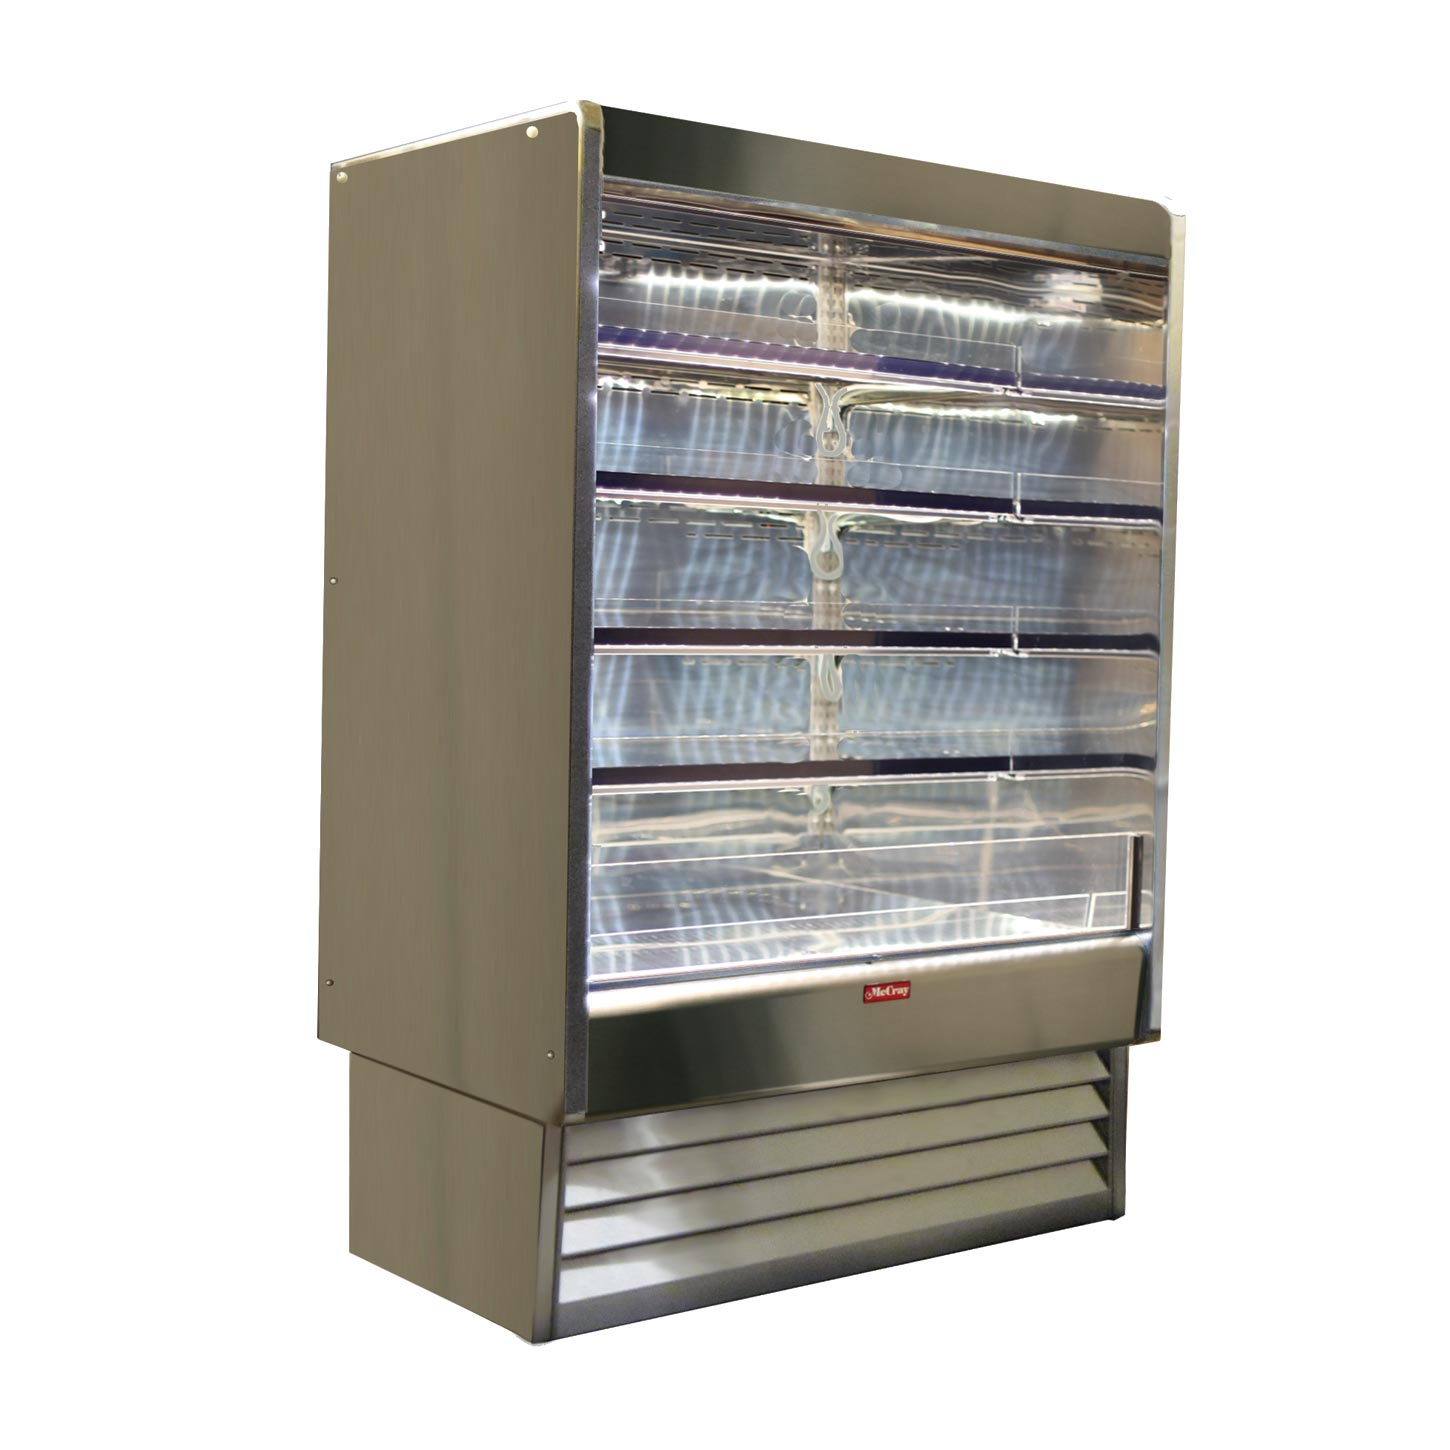 Howard-McCray SC-OD35E-5-S-LED merchandiser, open refrigerated display